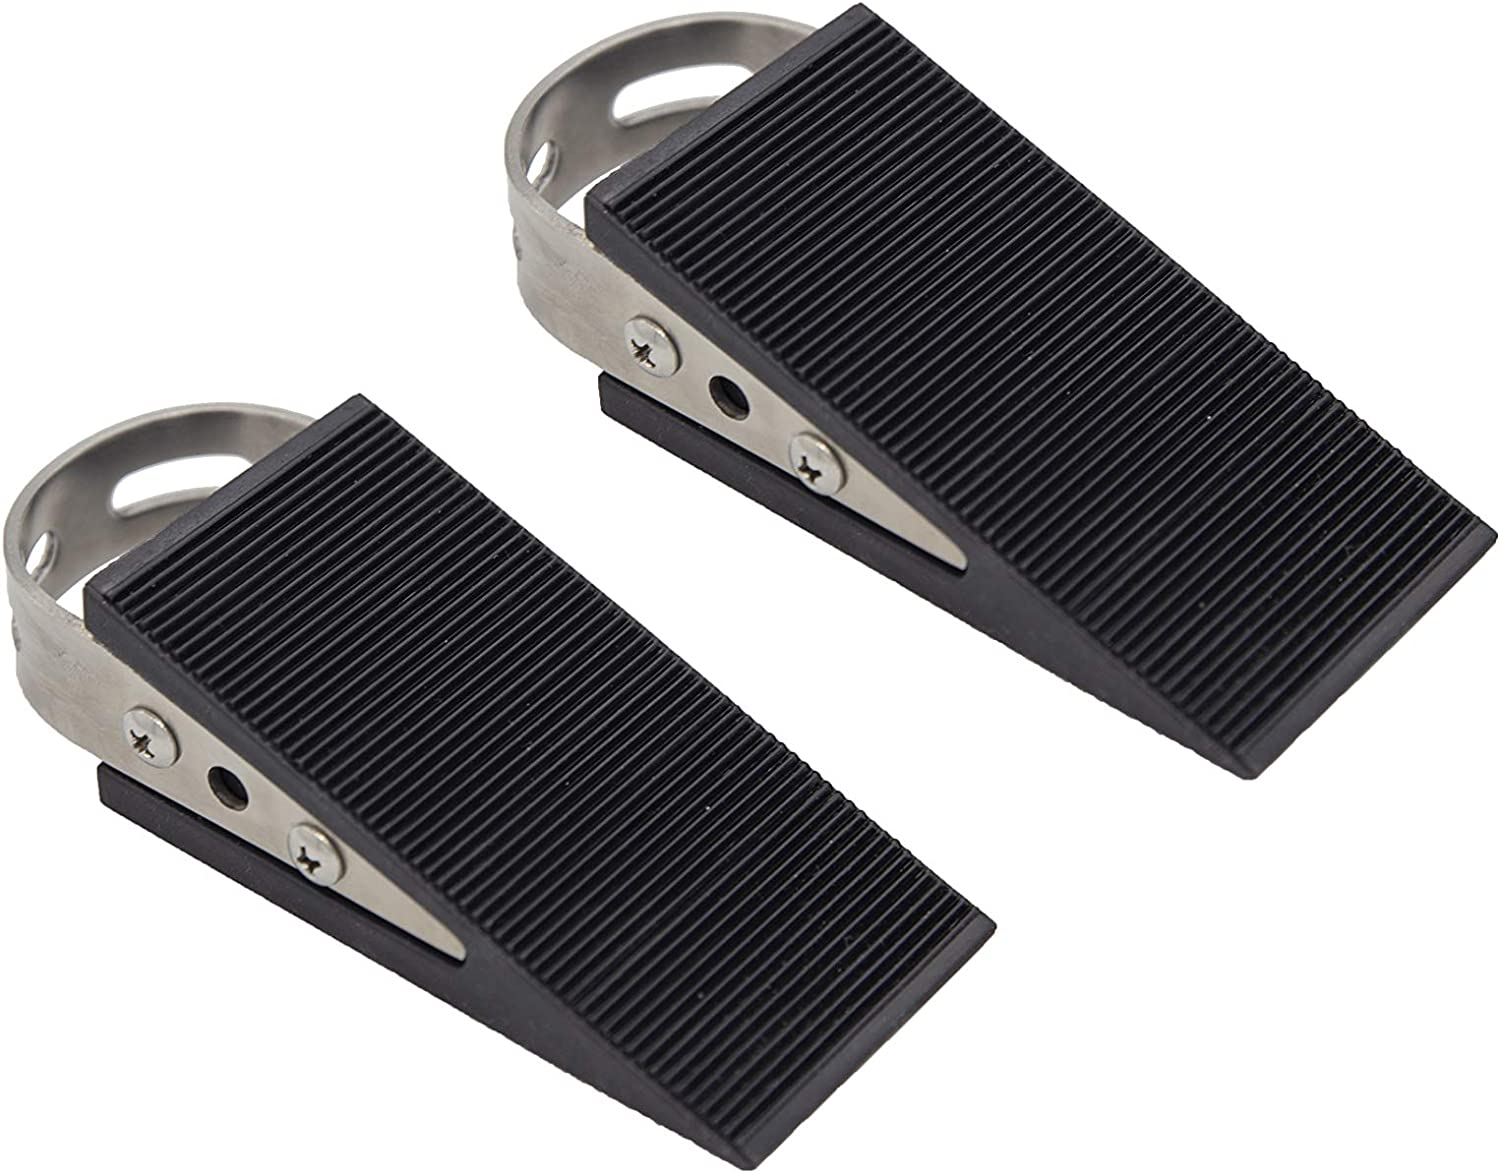 DW_Decor Door Stopper 2 Under blast sales Pack Fees free Steel Rubber Stainless Heavy and